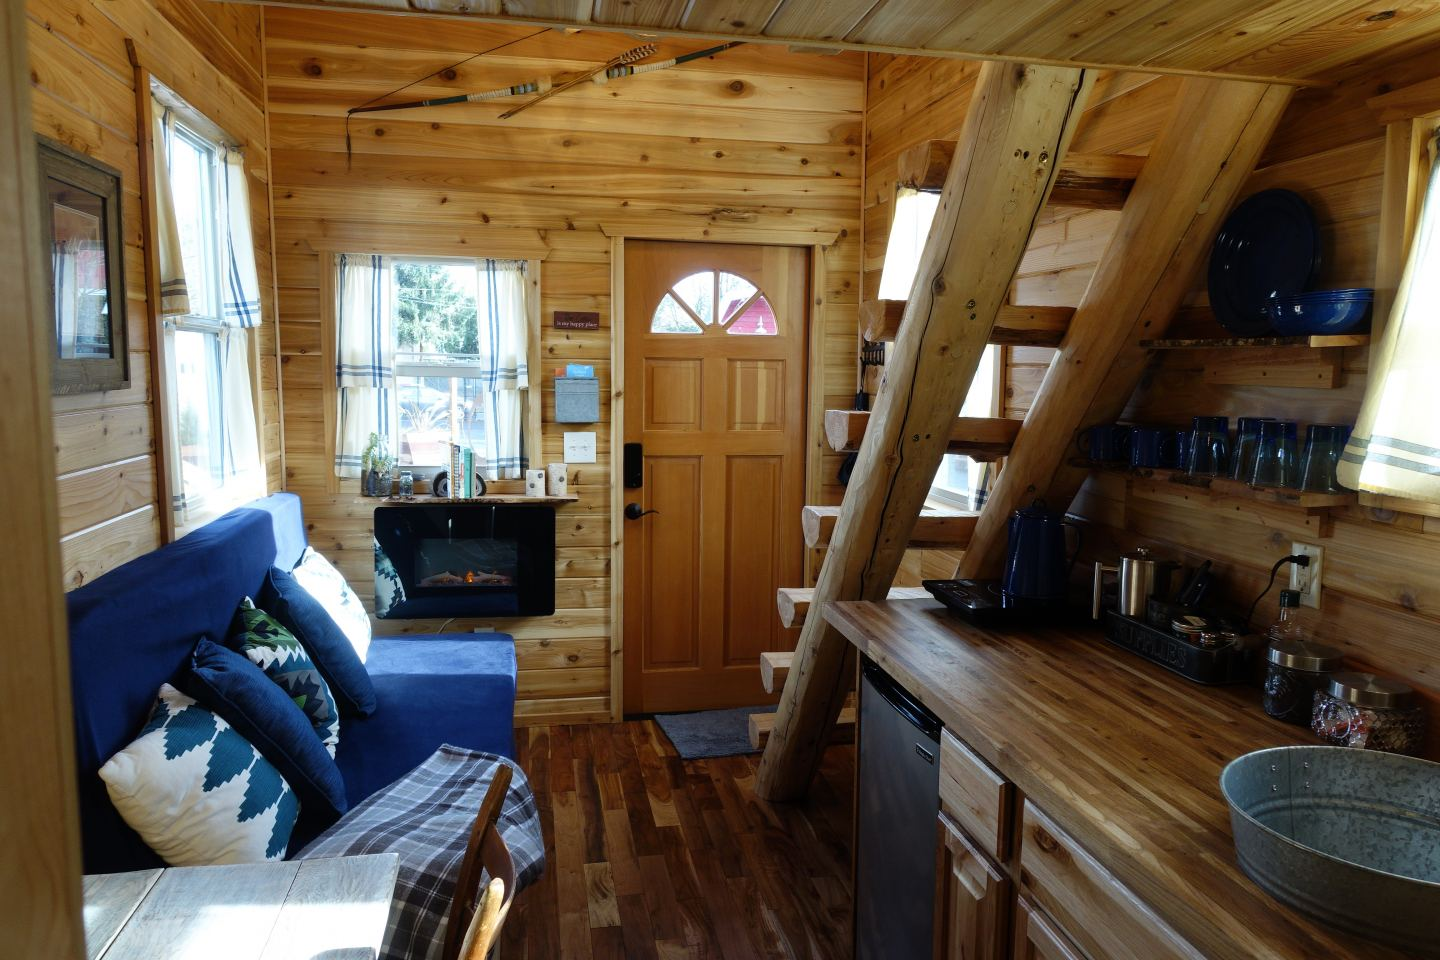 Log Cabin Themed Tiny House